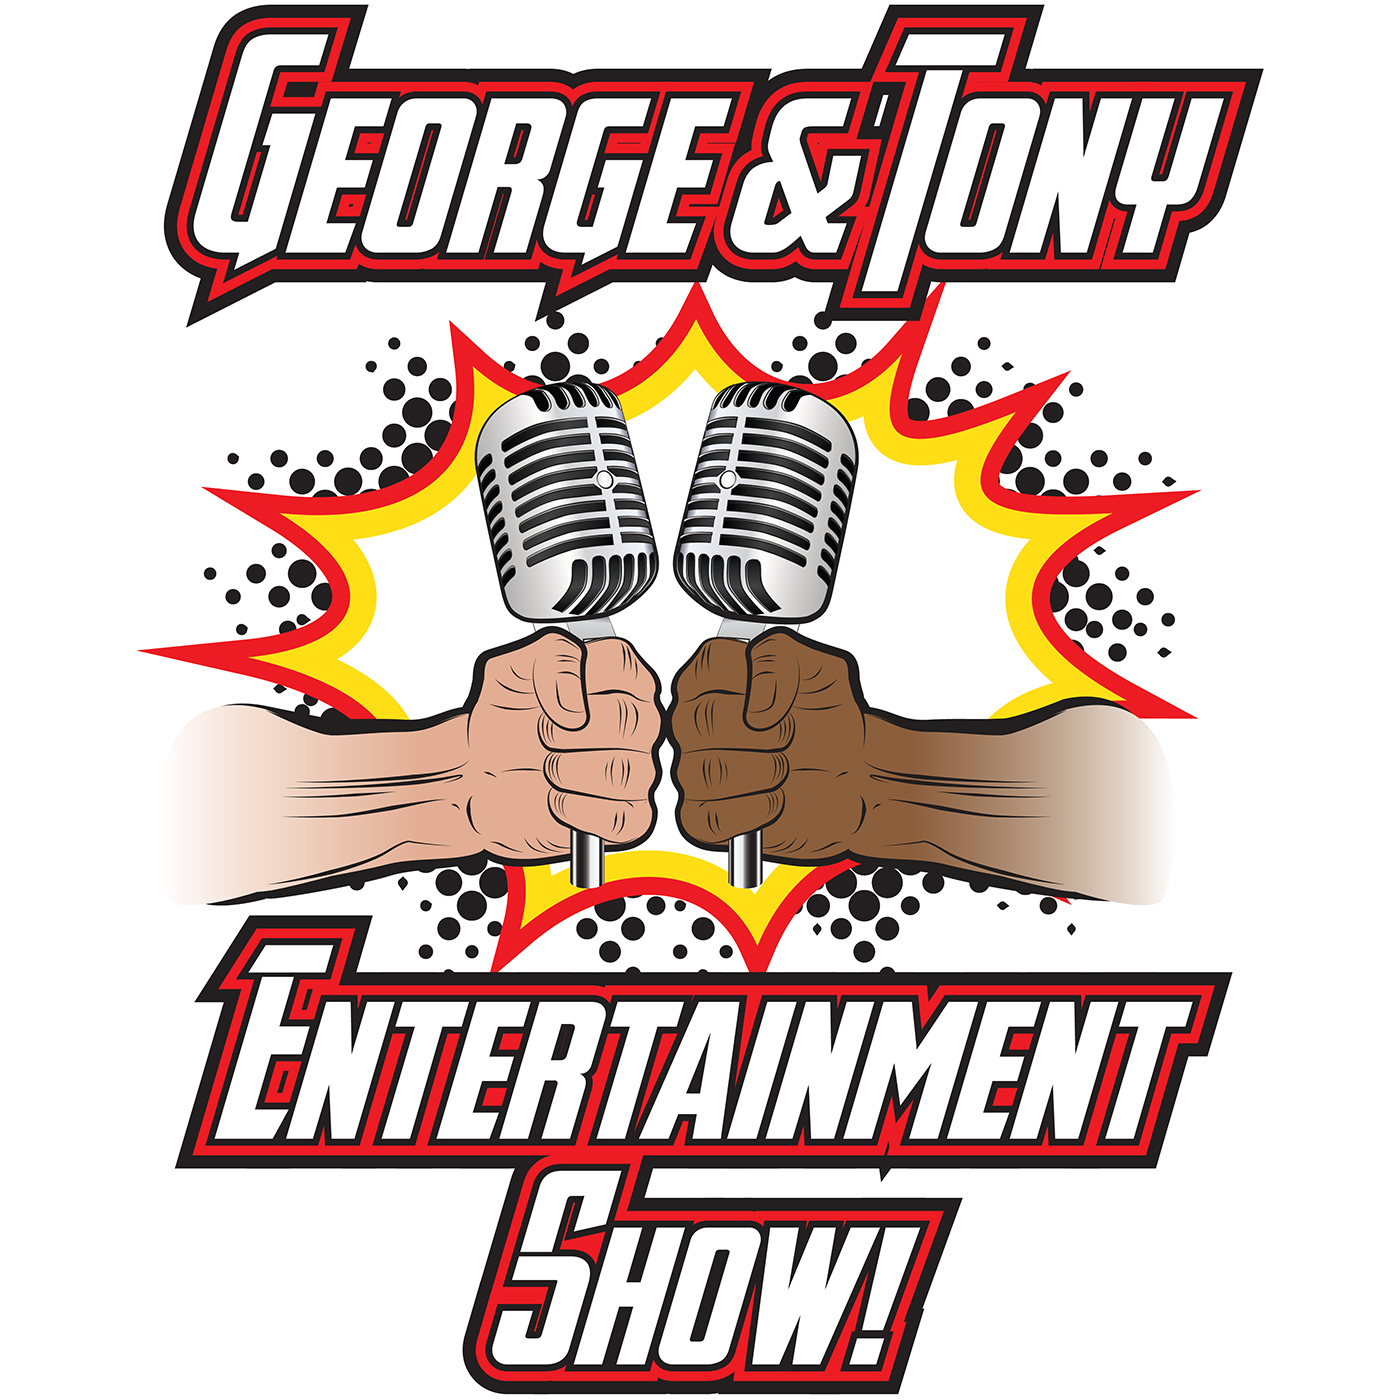 George and Tony Entertainment Show #19